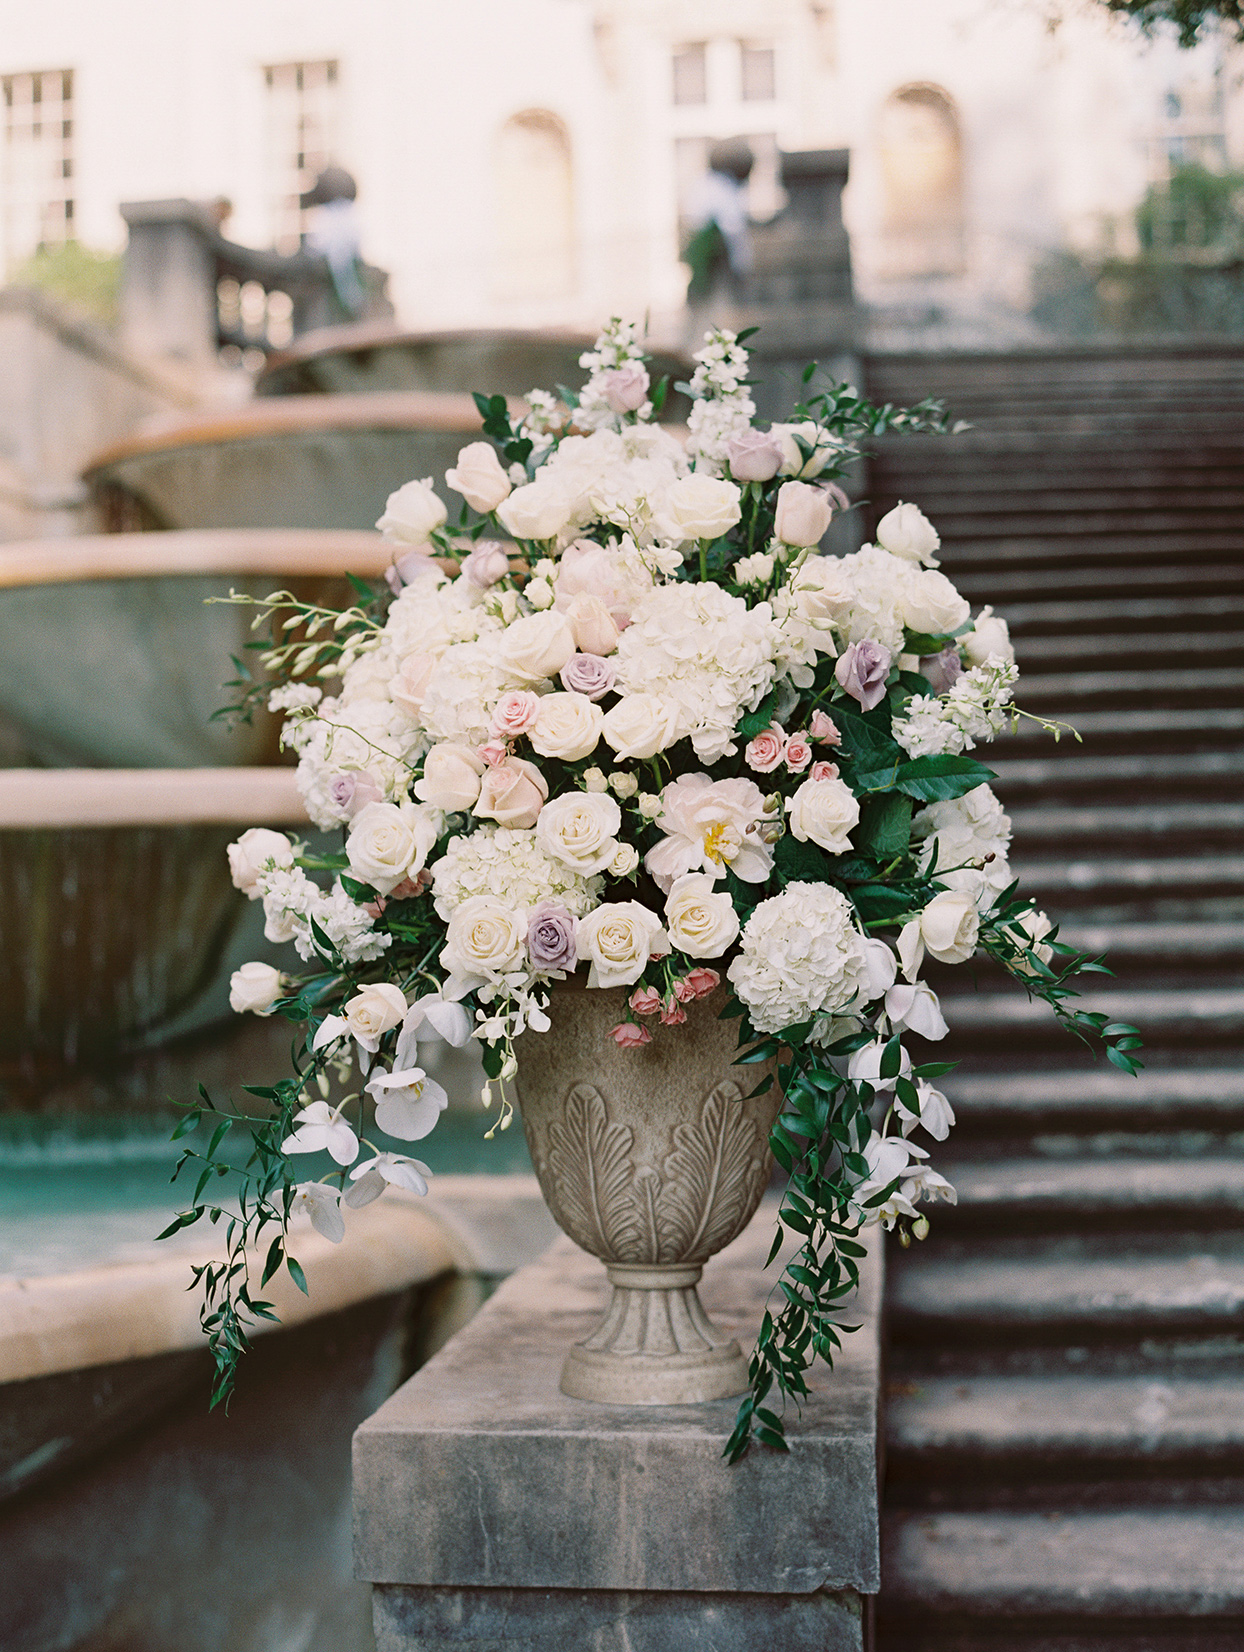 amelia justin wedding ceremony vase of flowers on stone steps